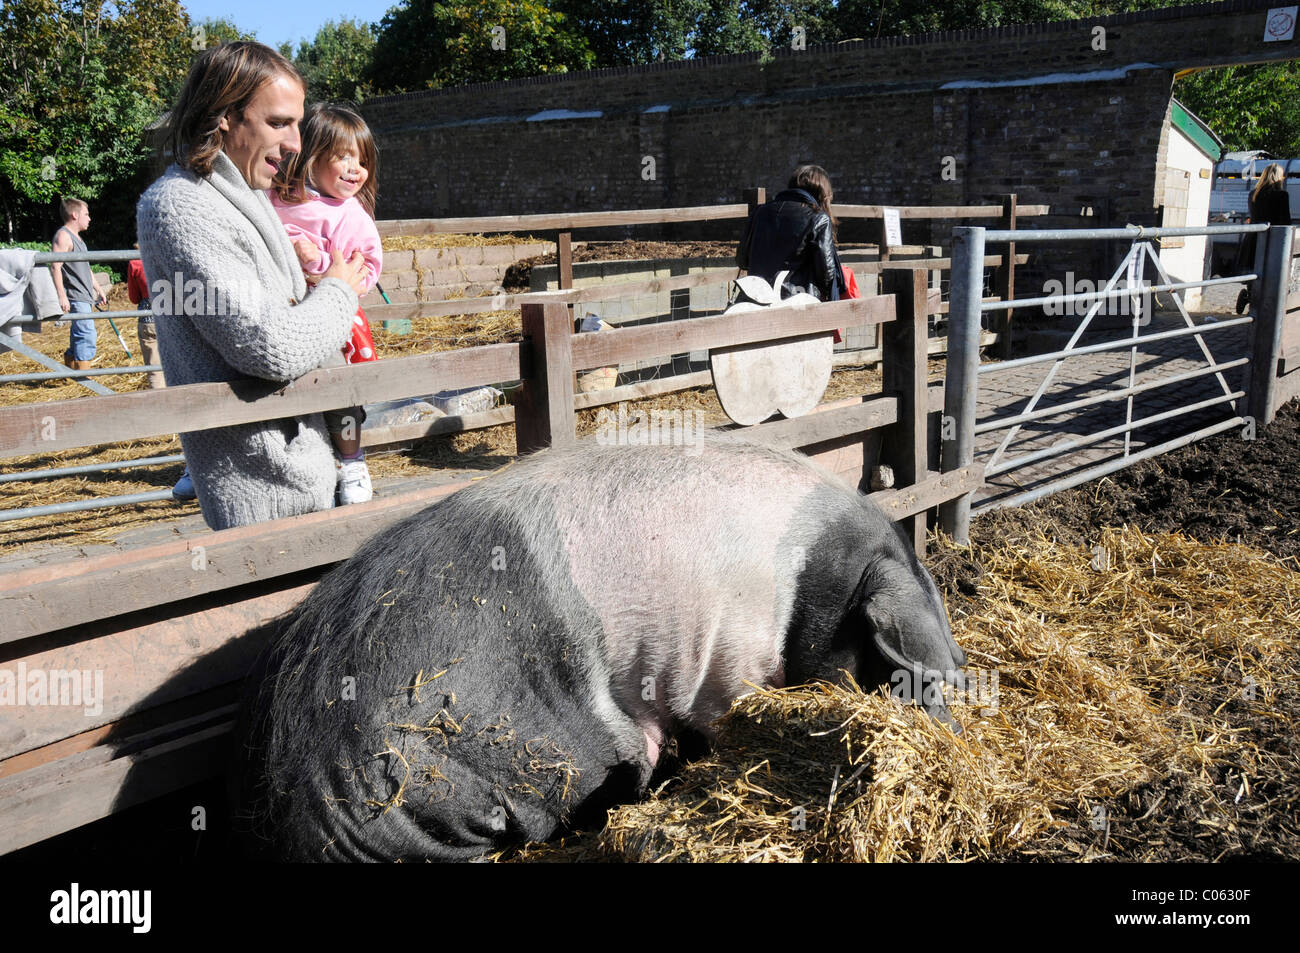 UK.Families visiting the Spitalfields City Farm in east London - Stock Image